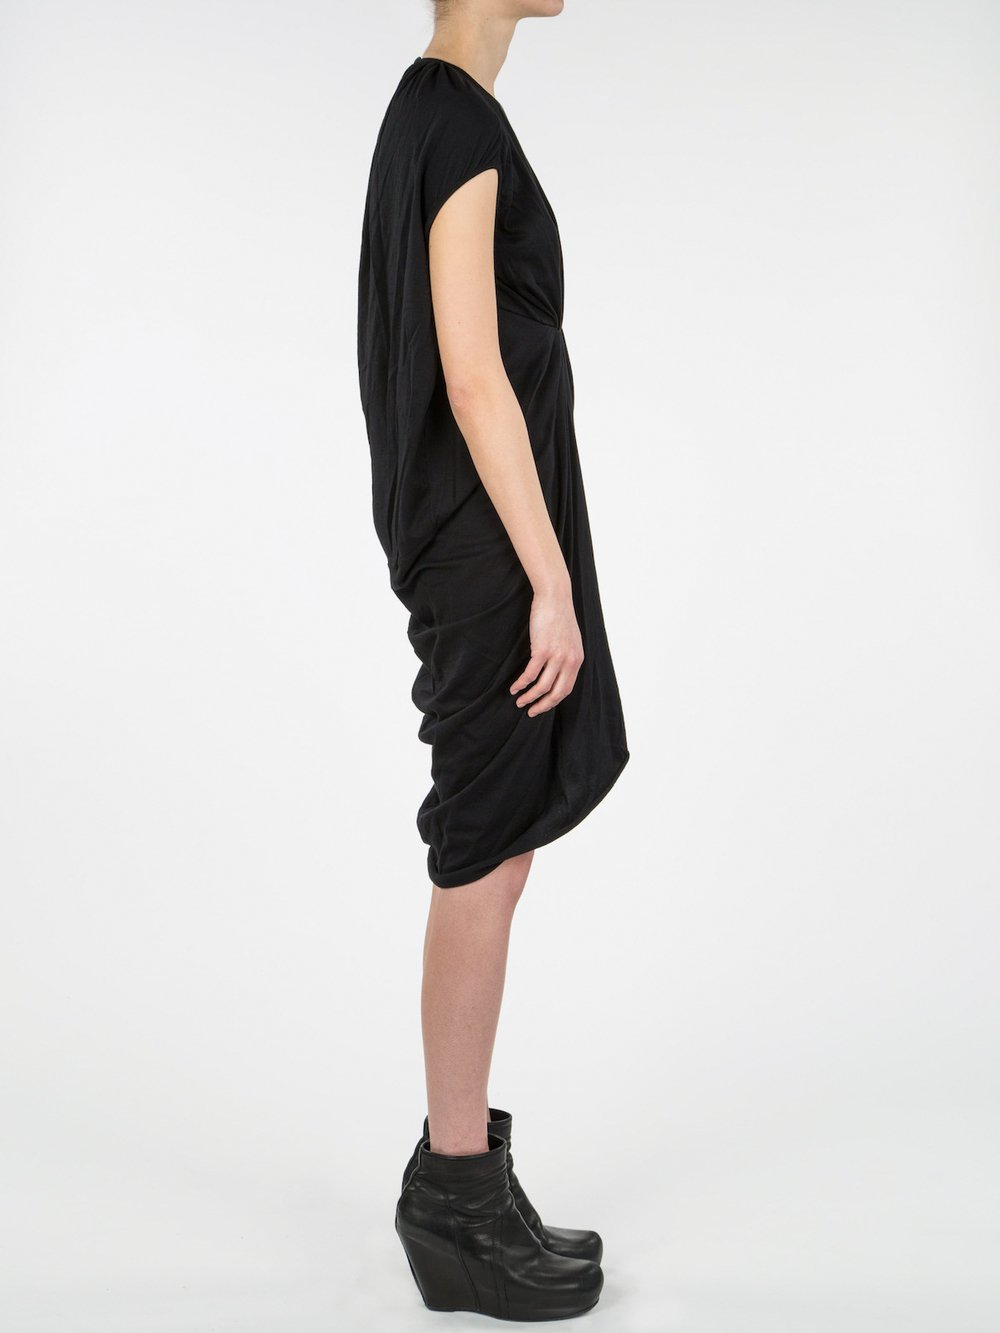 RICK OWENS LILIES - LOBSTER DRESS